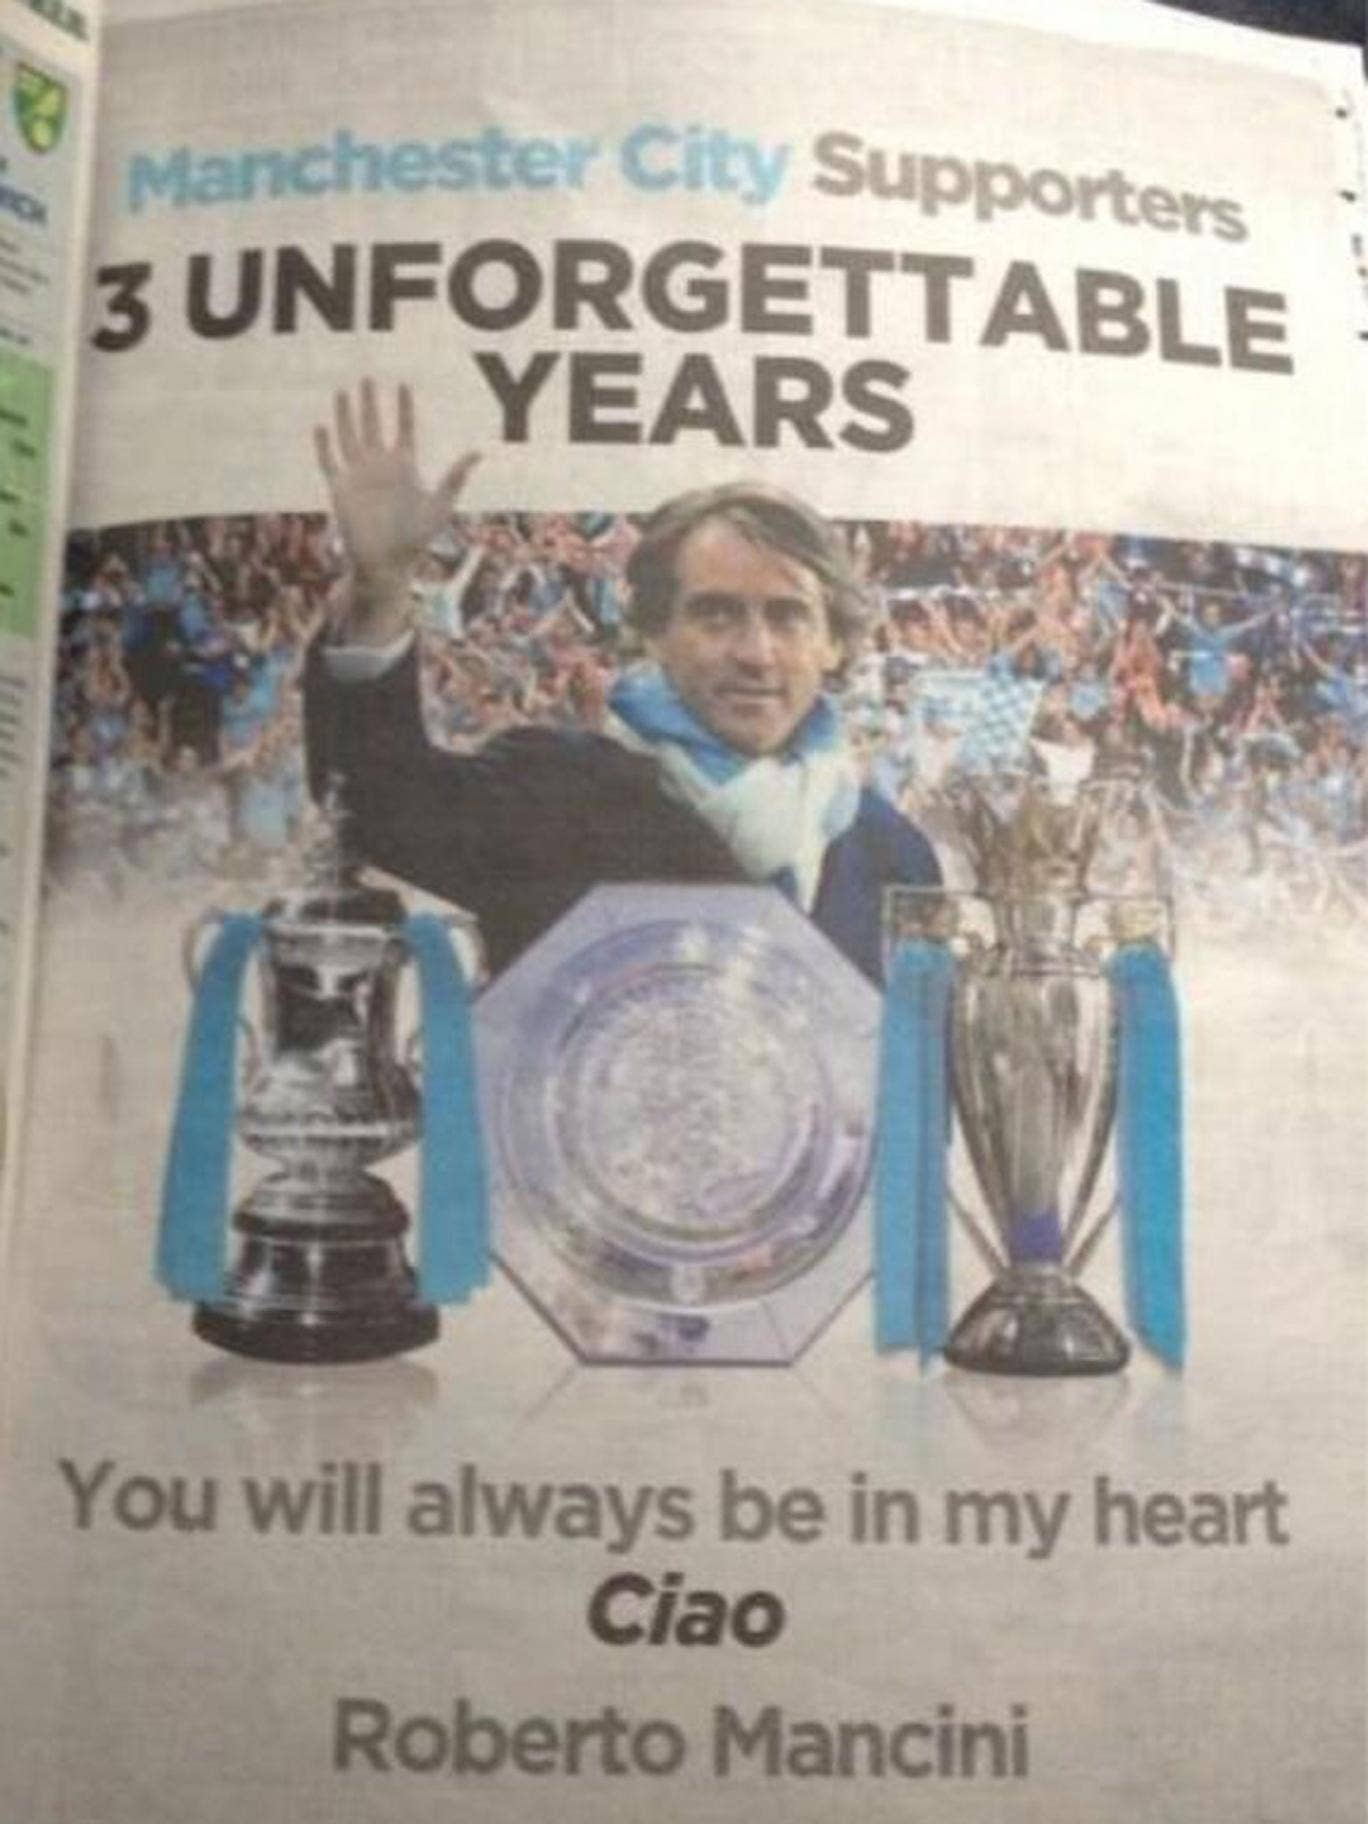 Ciao baby: How Mancini said goodbye to City supporters